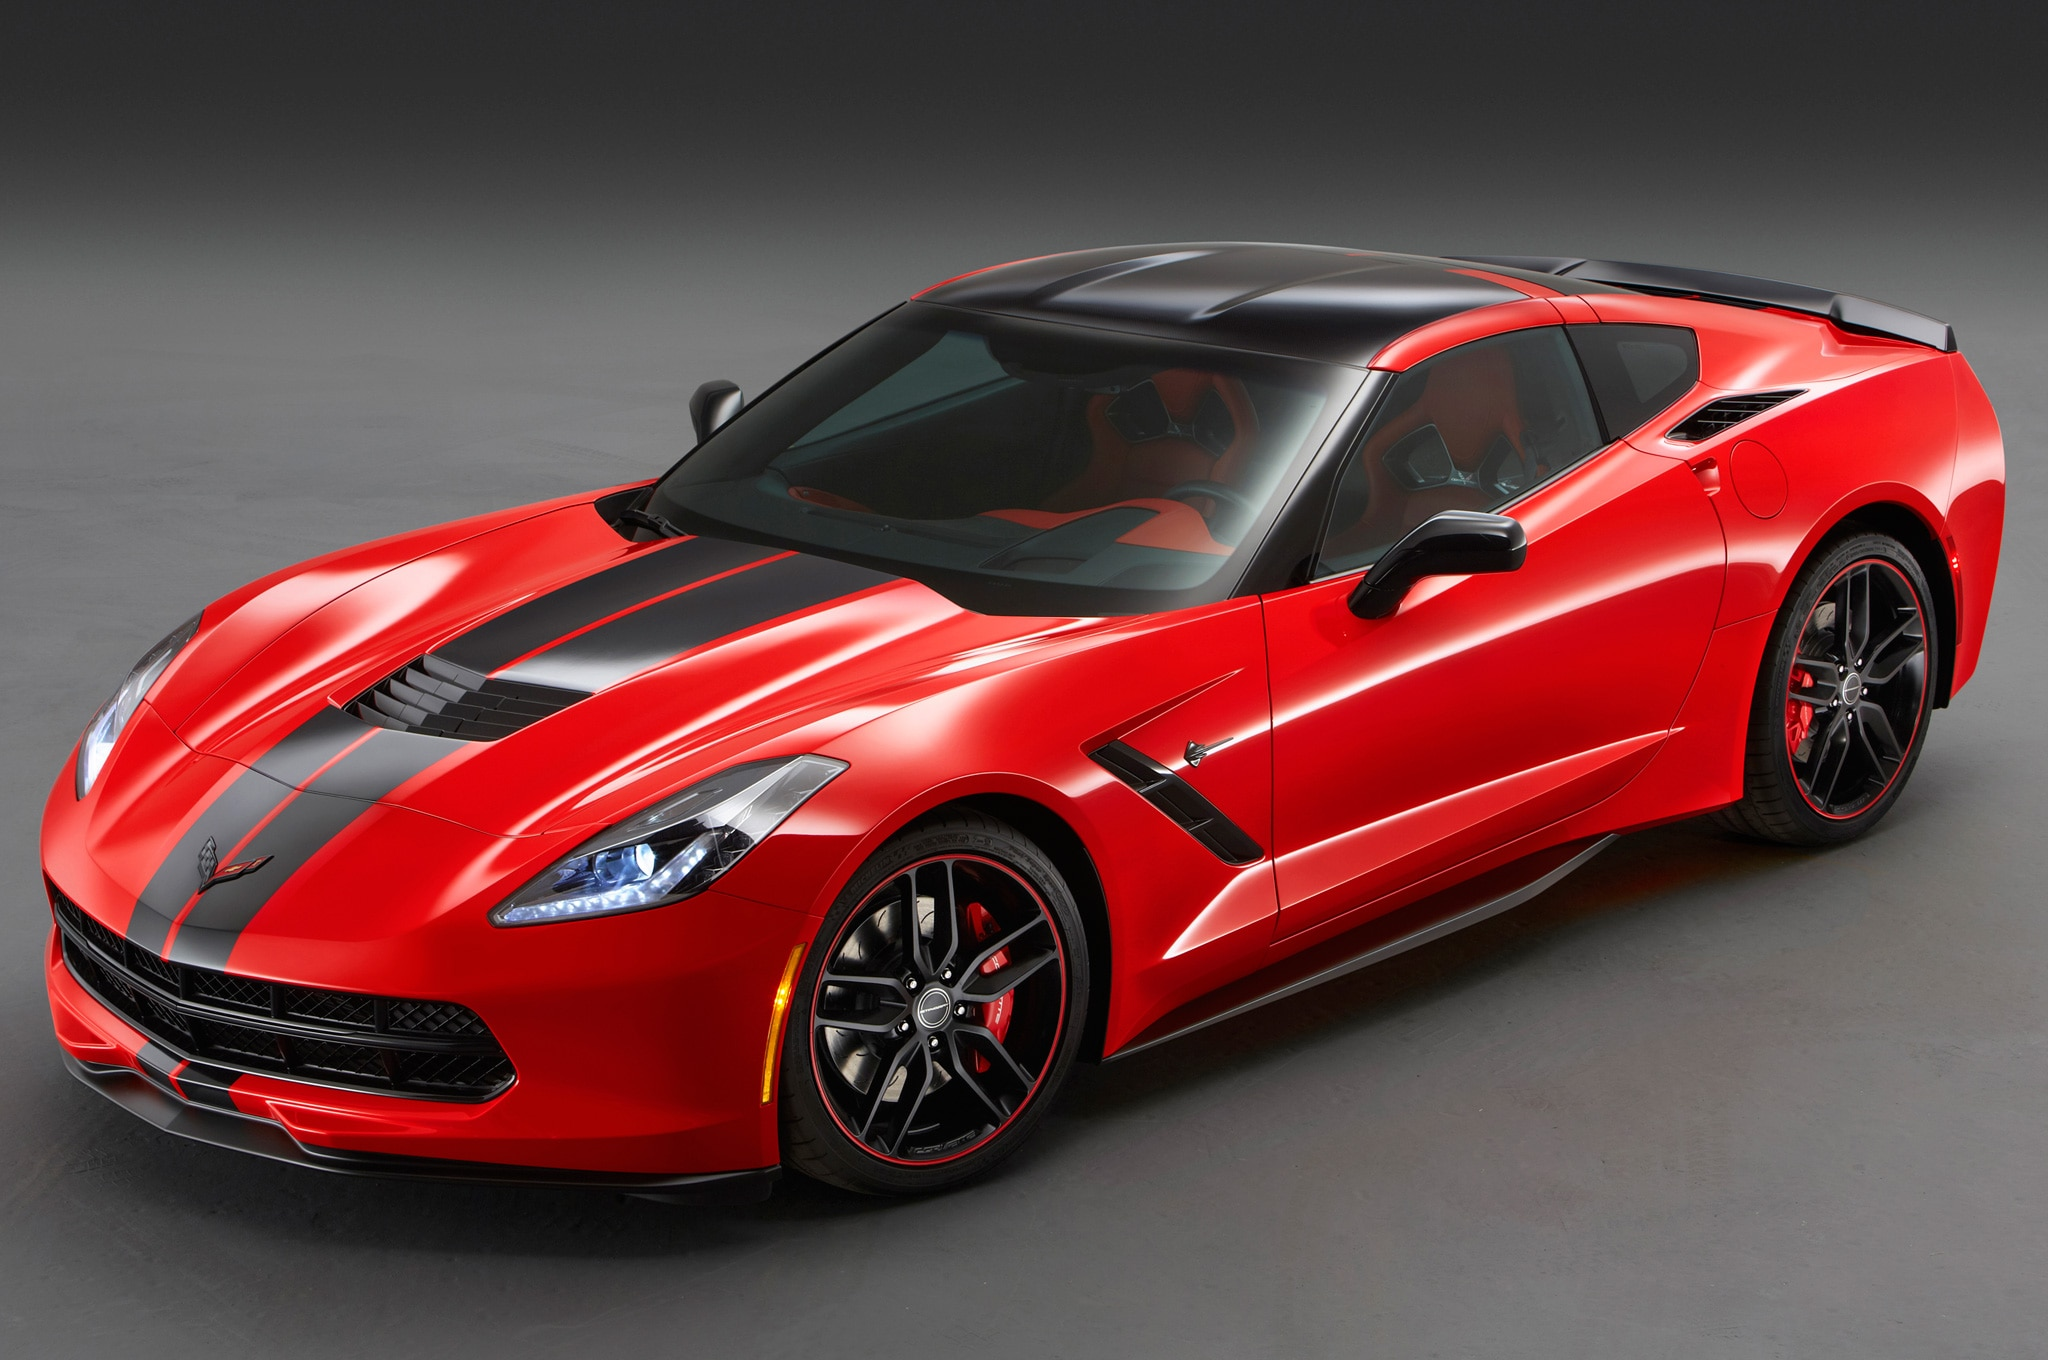 2014 Chevrolet Corvette Stingray Pacific Coupe 2013 SEMA Concept Front Three Quarters View1